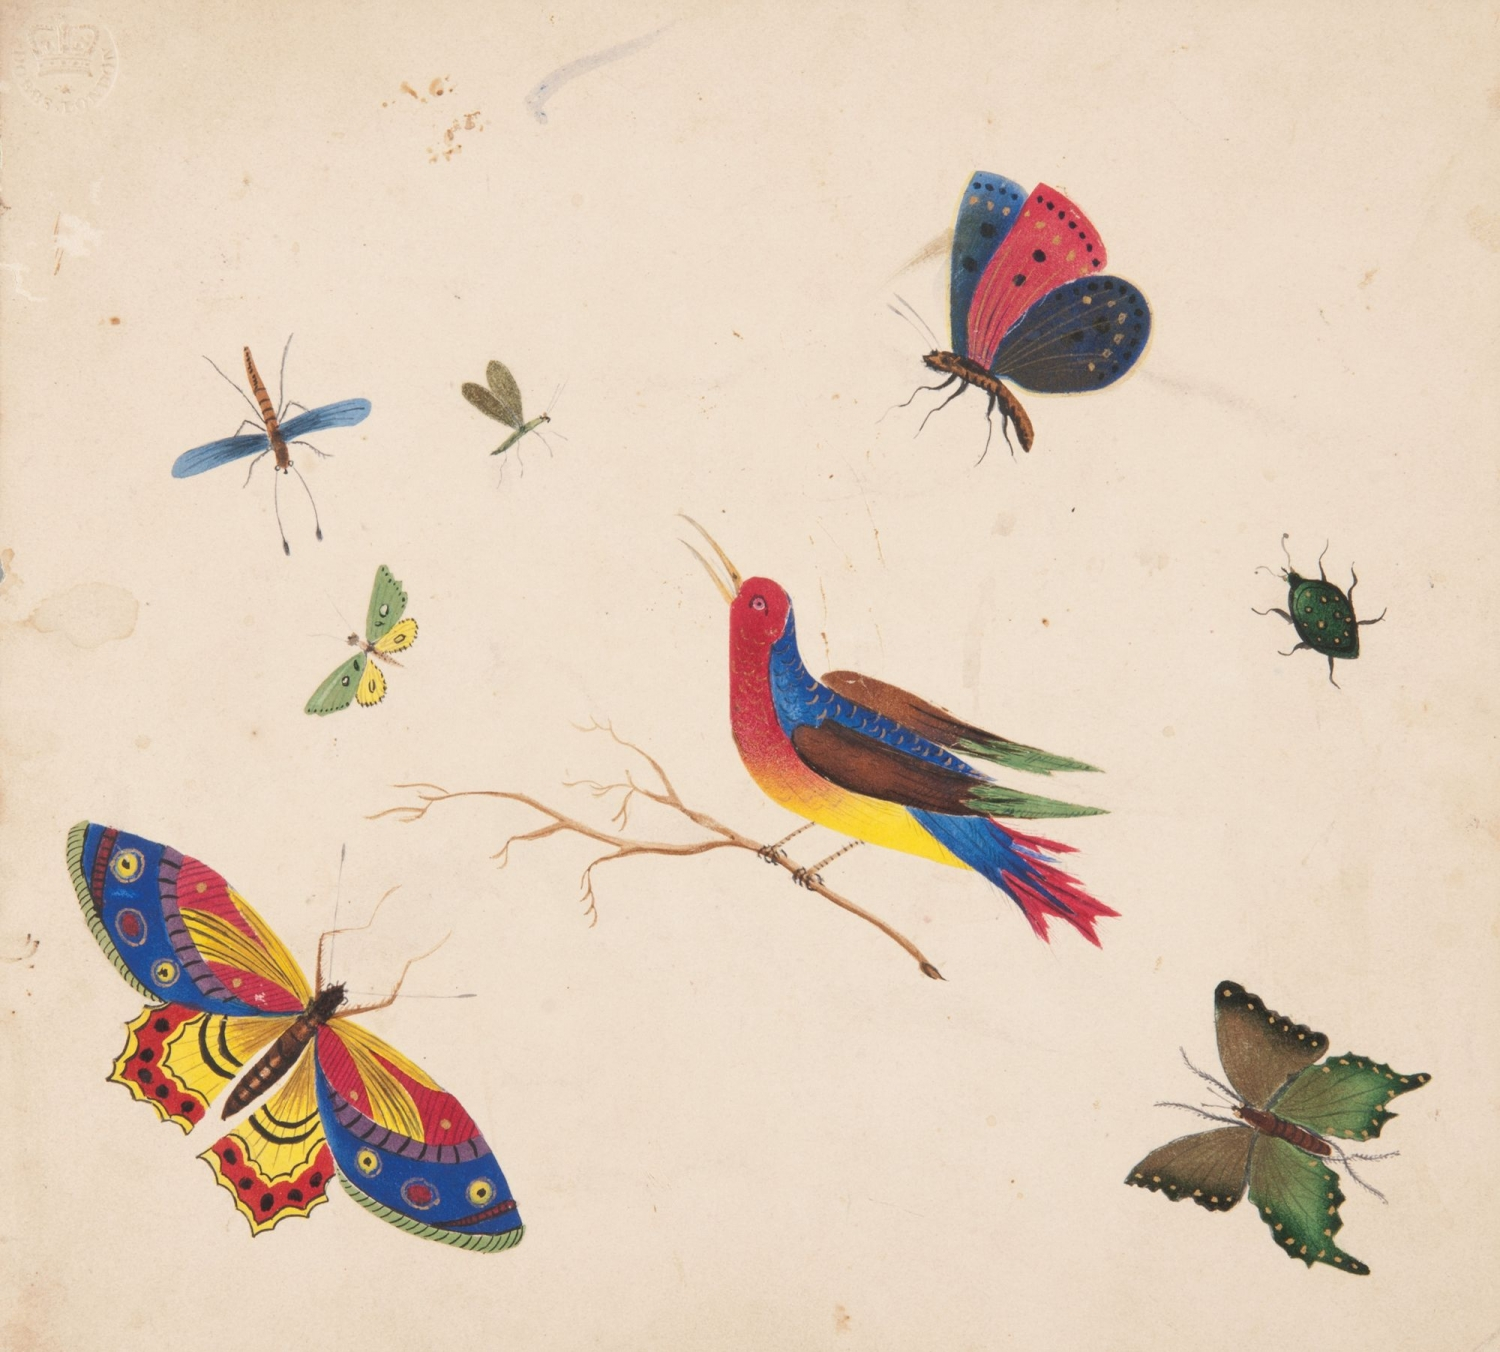 Bird and insects poonah painting